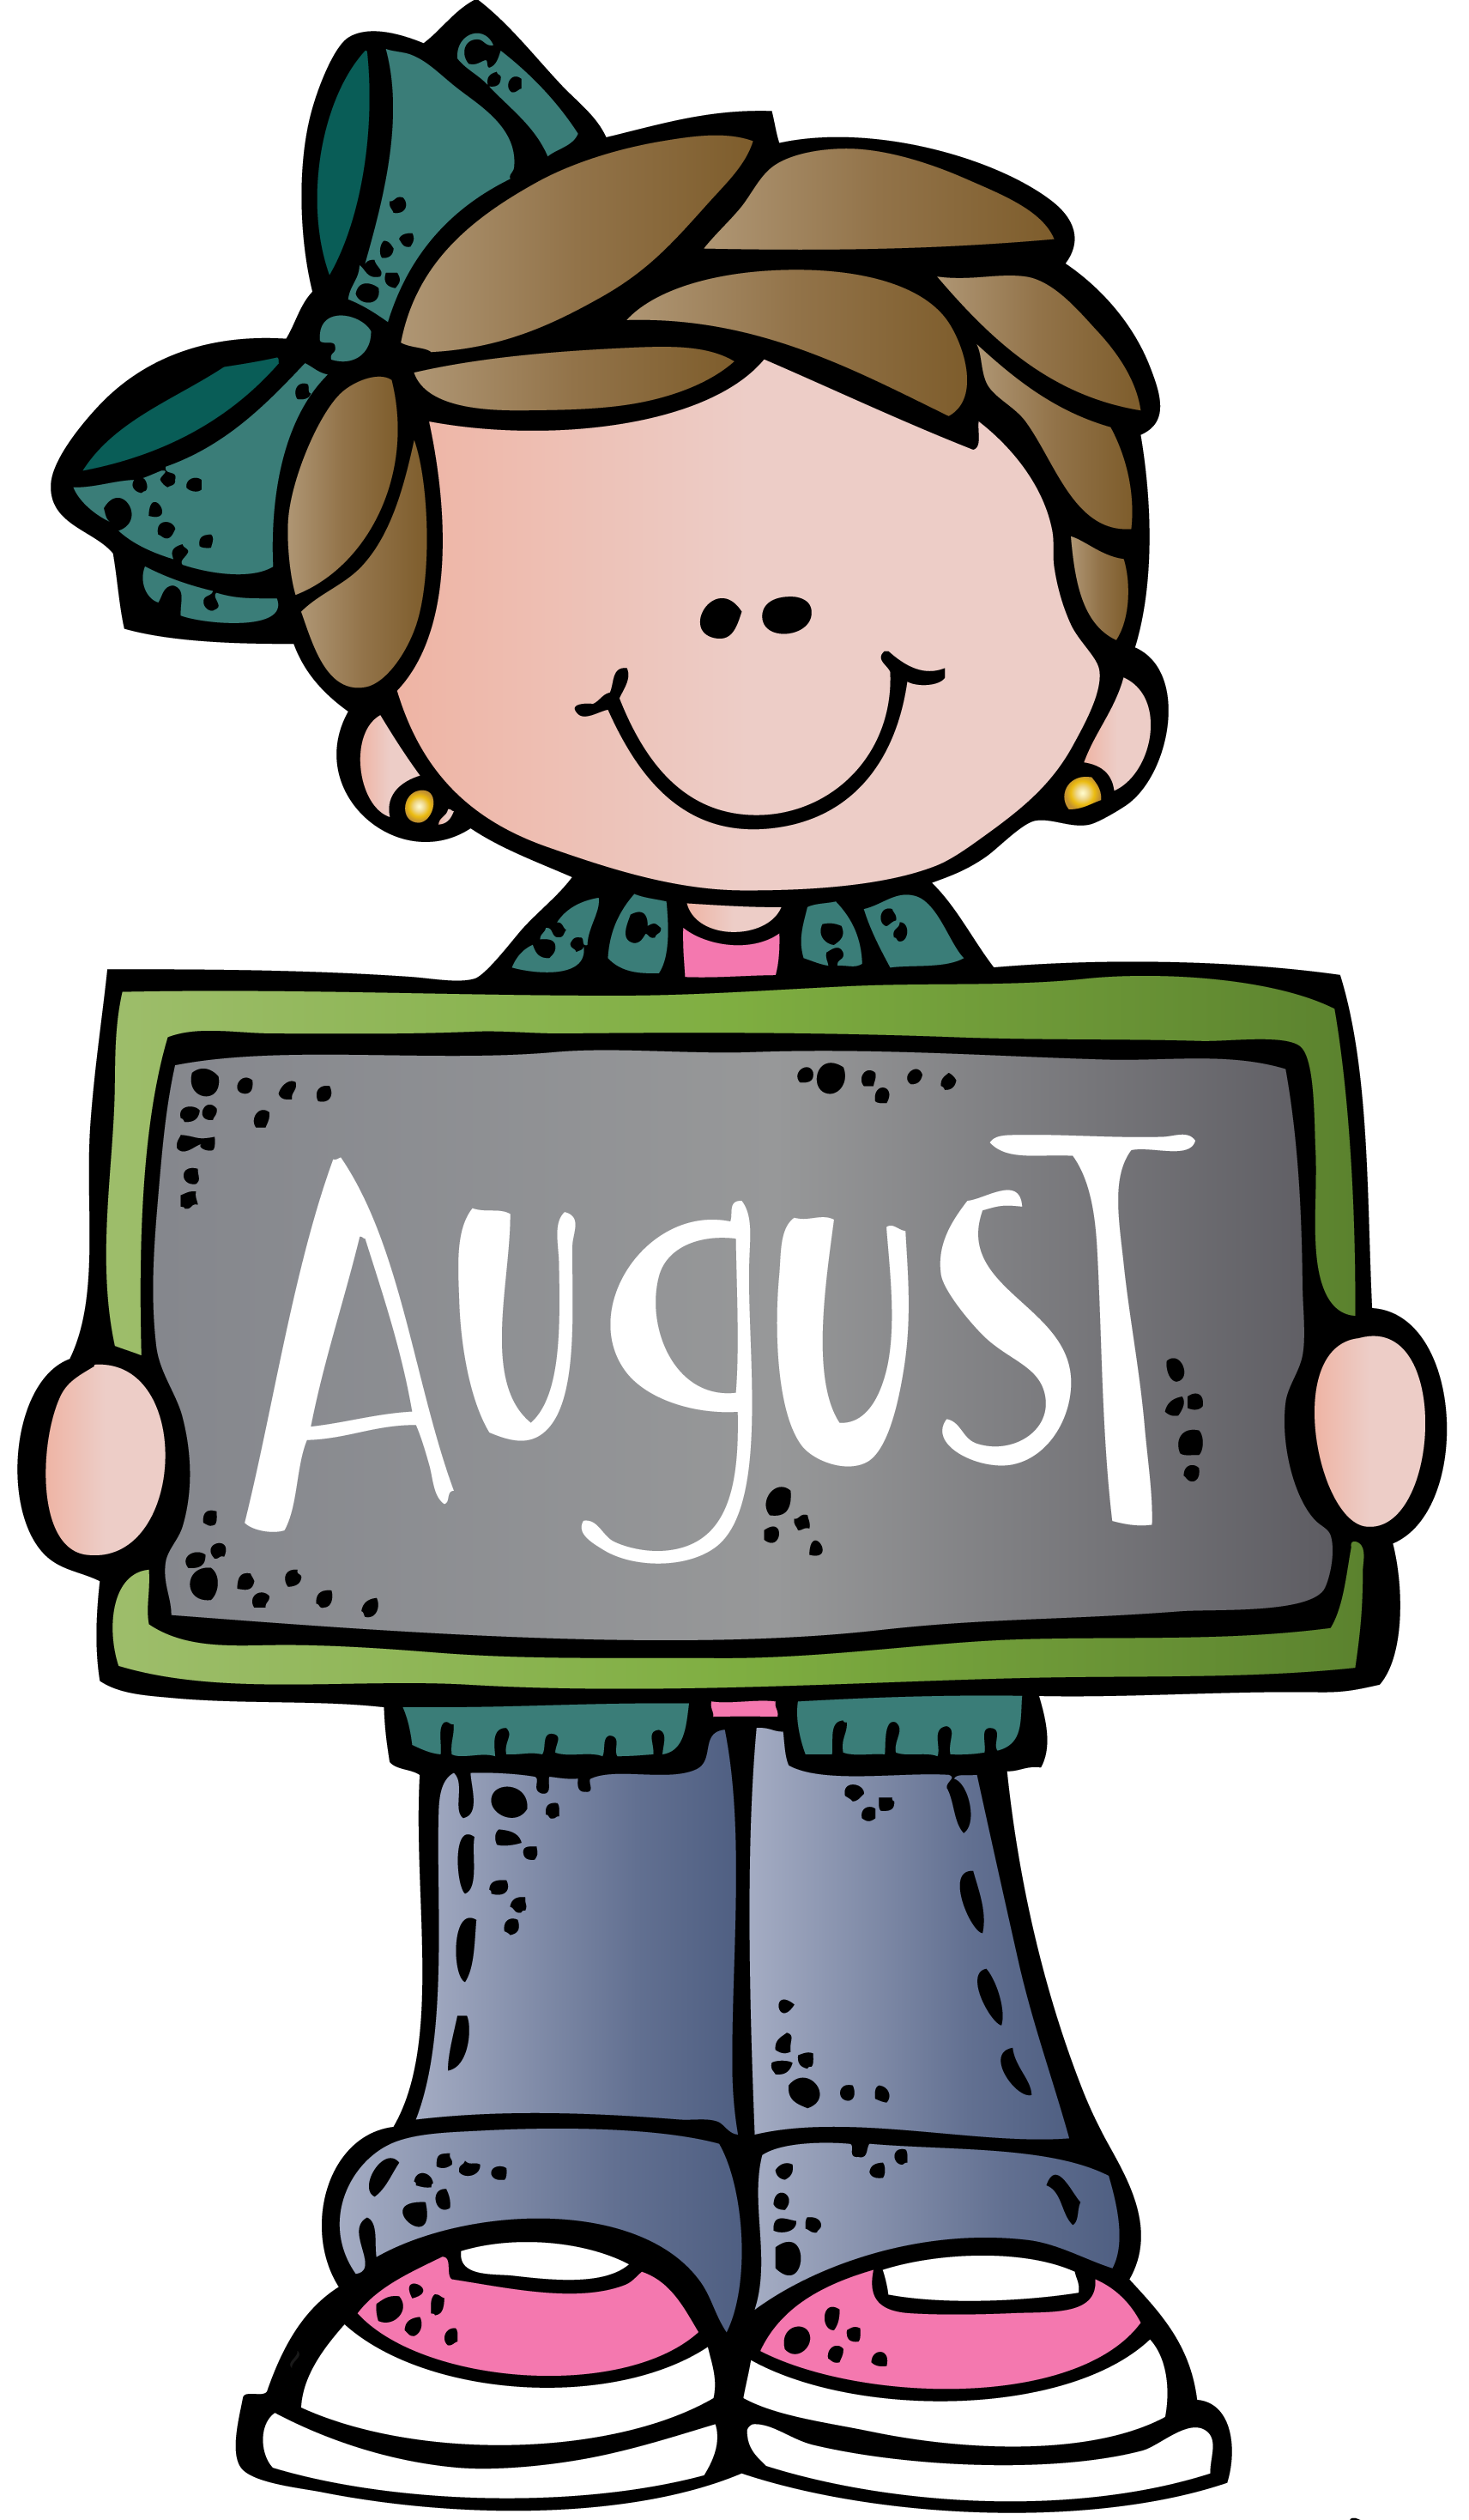 August clipart august september. To print free images